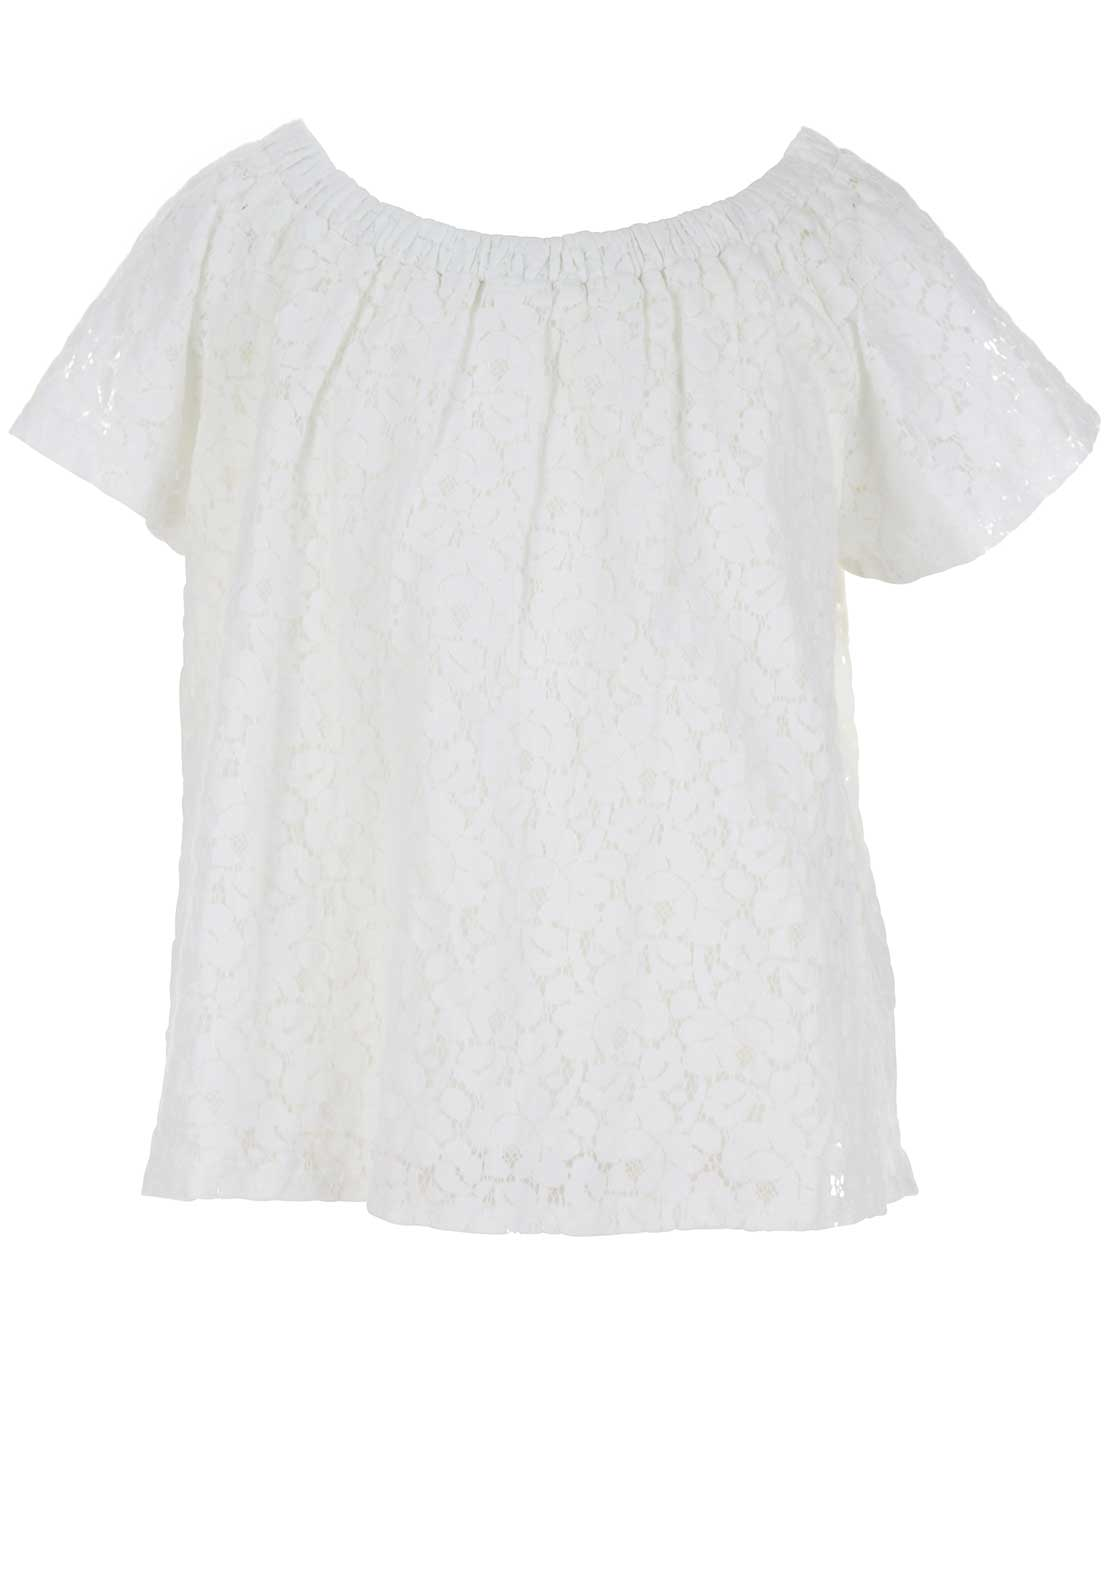 Blue Seven Lace Overlay Bardot Top, White